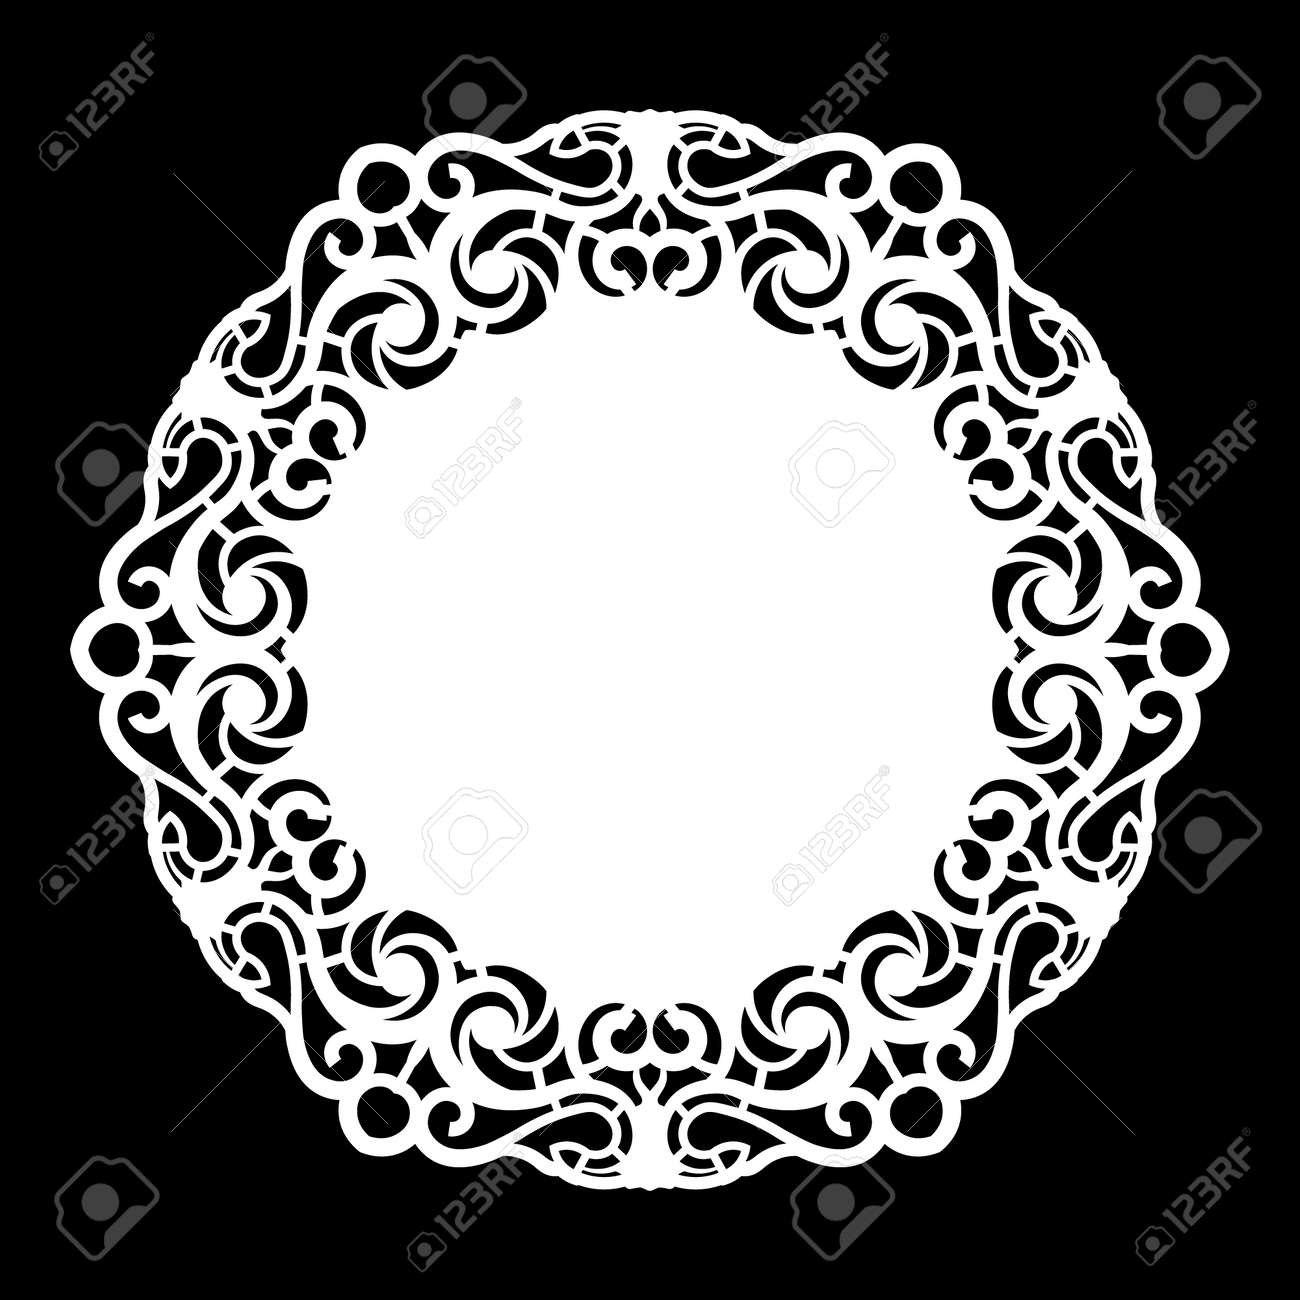 lace round paper doily lacy snowflake greeting element template rh 123rf com vector lace pattern background seamless vector lace pattern